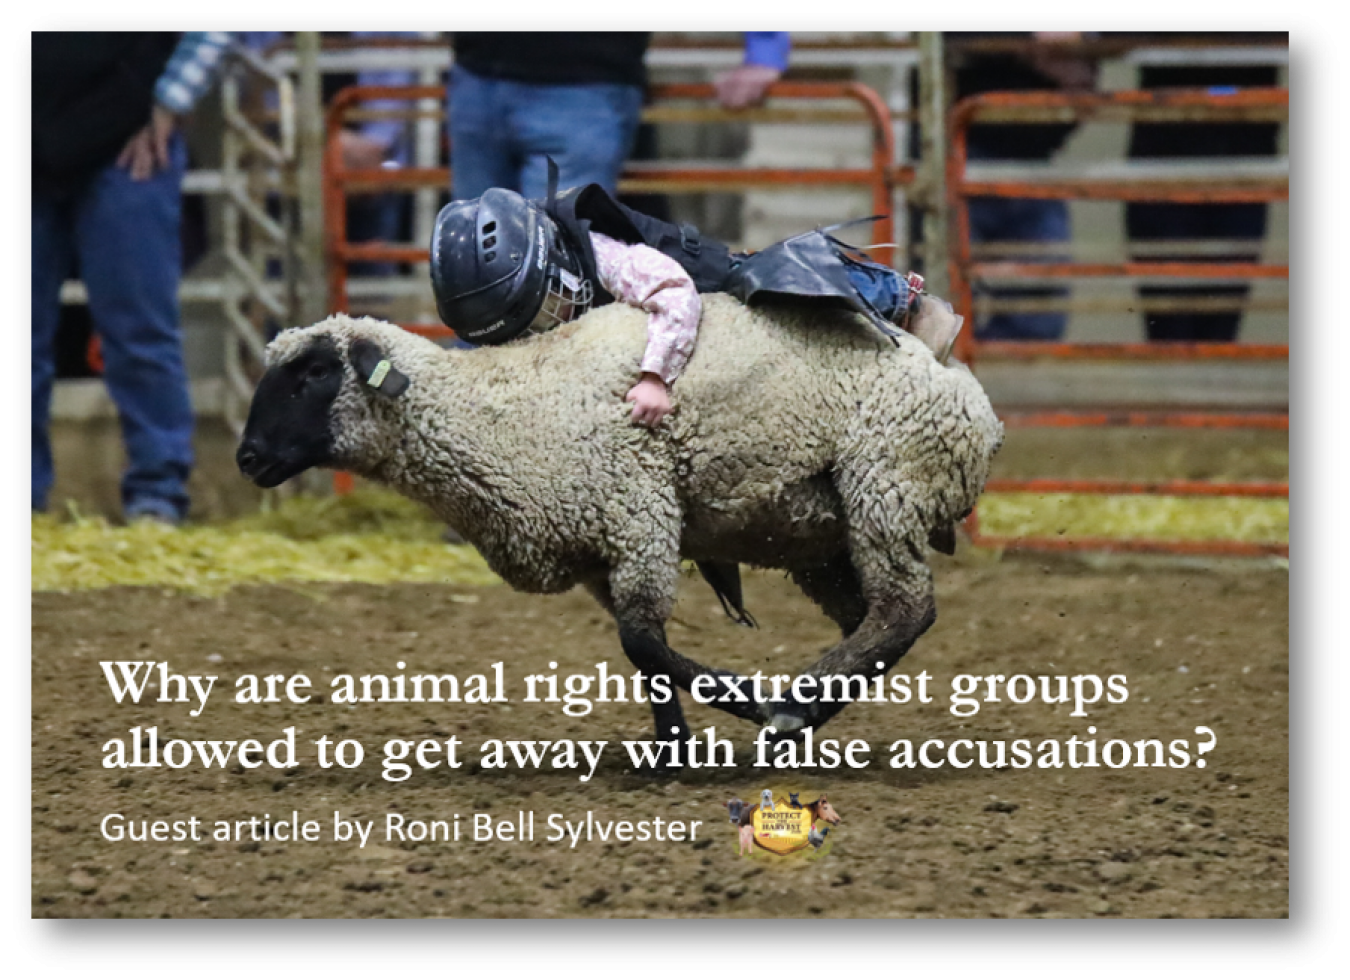 Why Are Animal Rights Extremist Groups Allowed to Get Away with False Accusations?